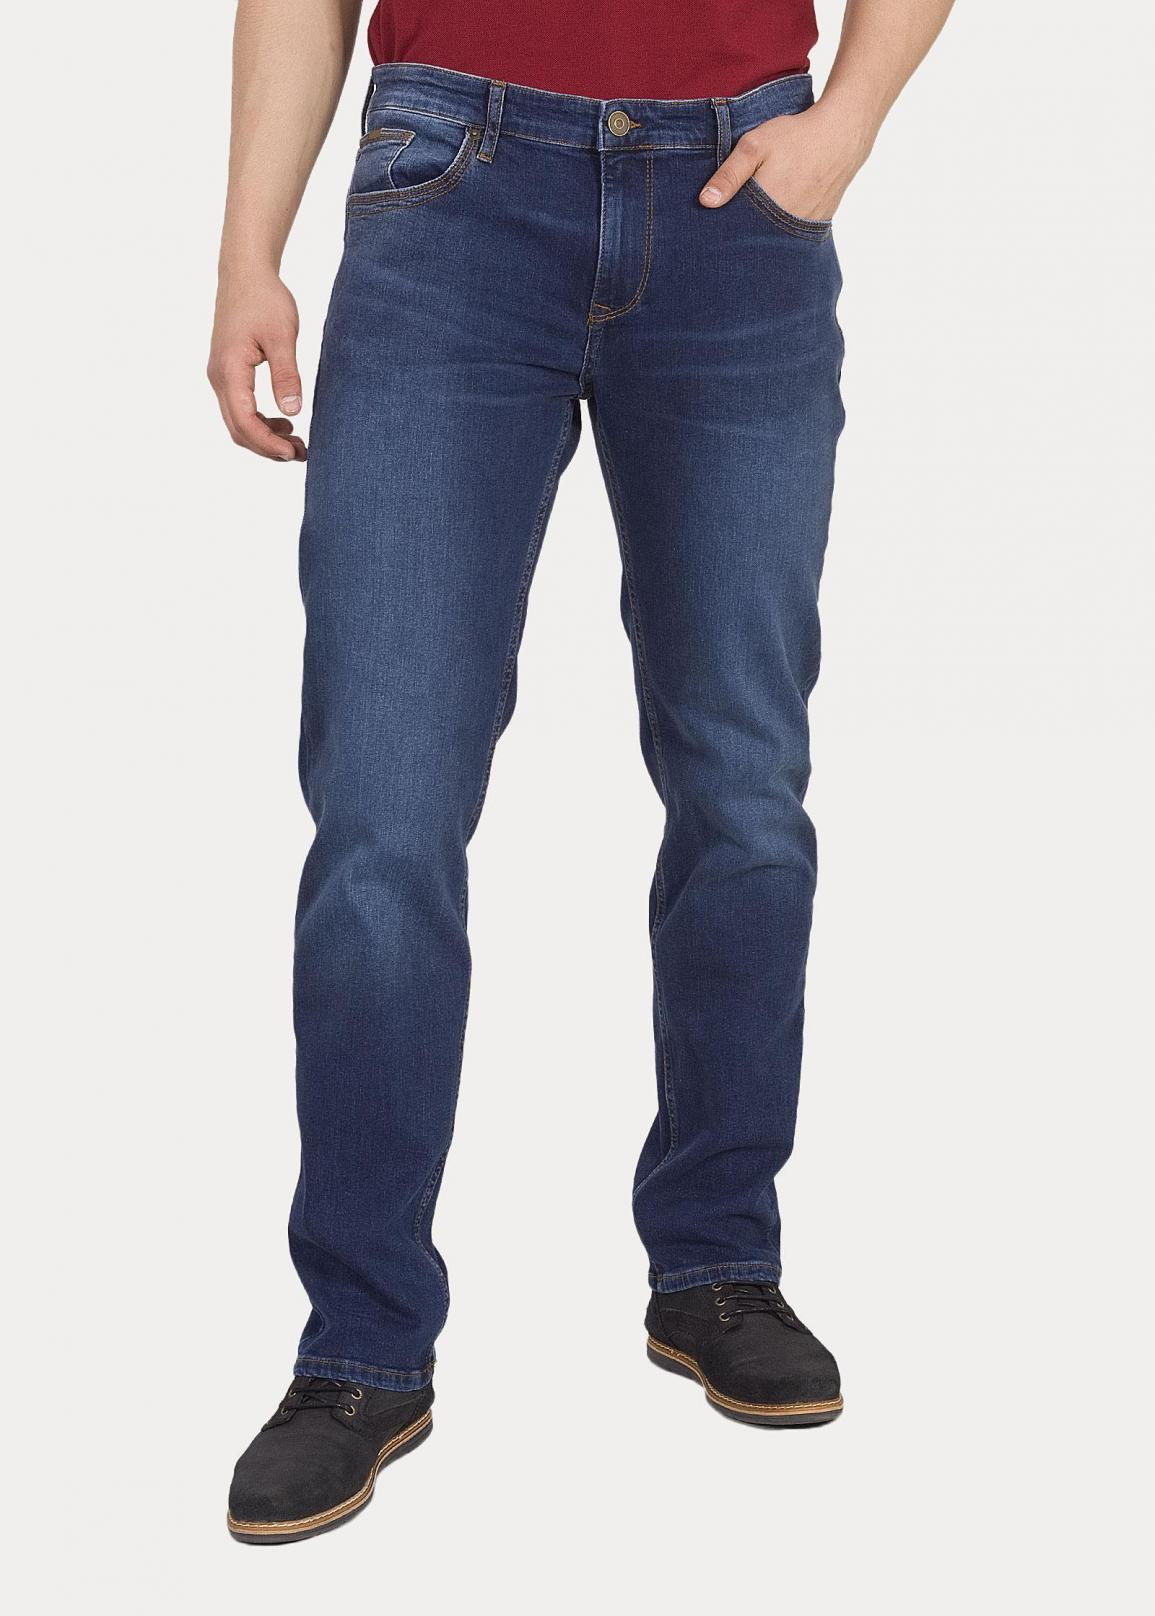 Cross® Jeans Jack - Dark Blue (382)